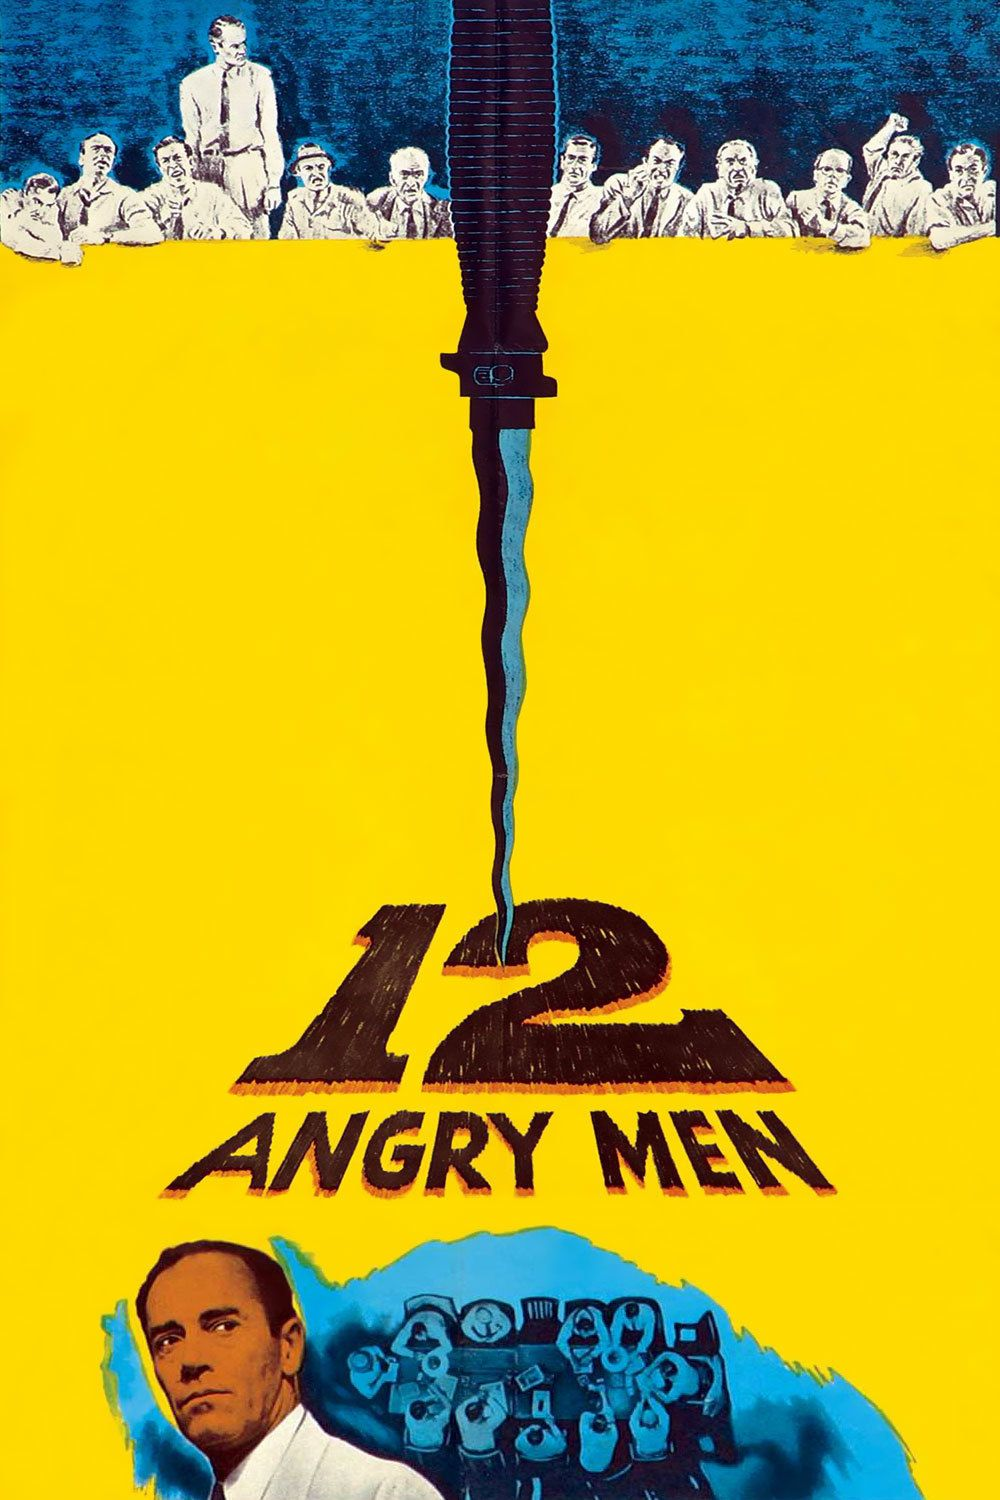 click image to watch 12 Angry Men (1957)